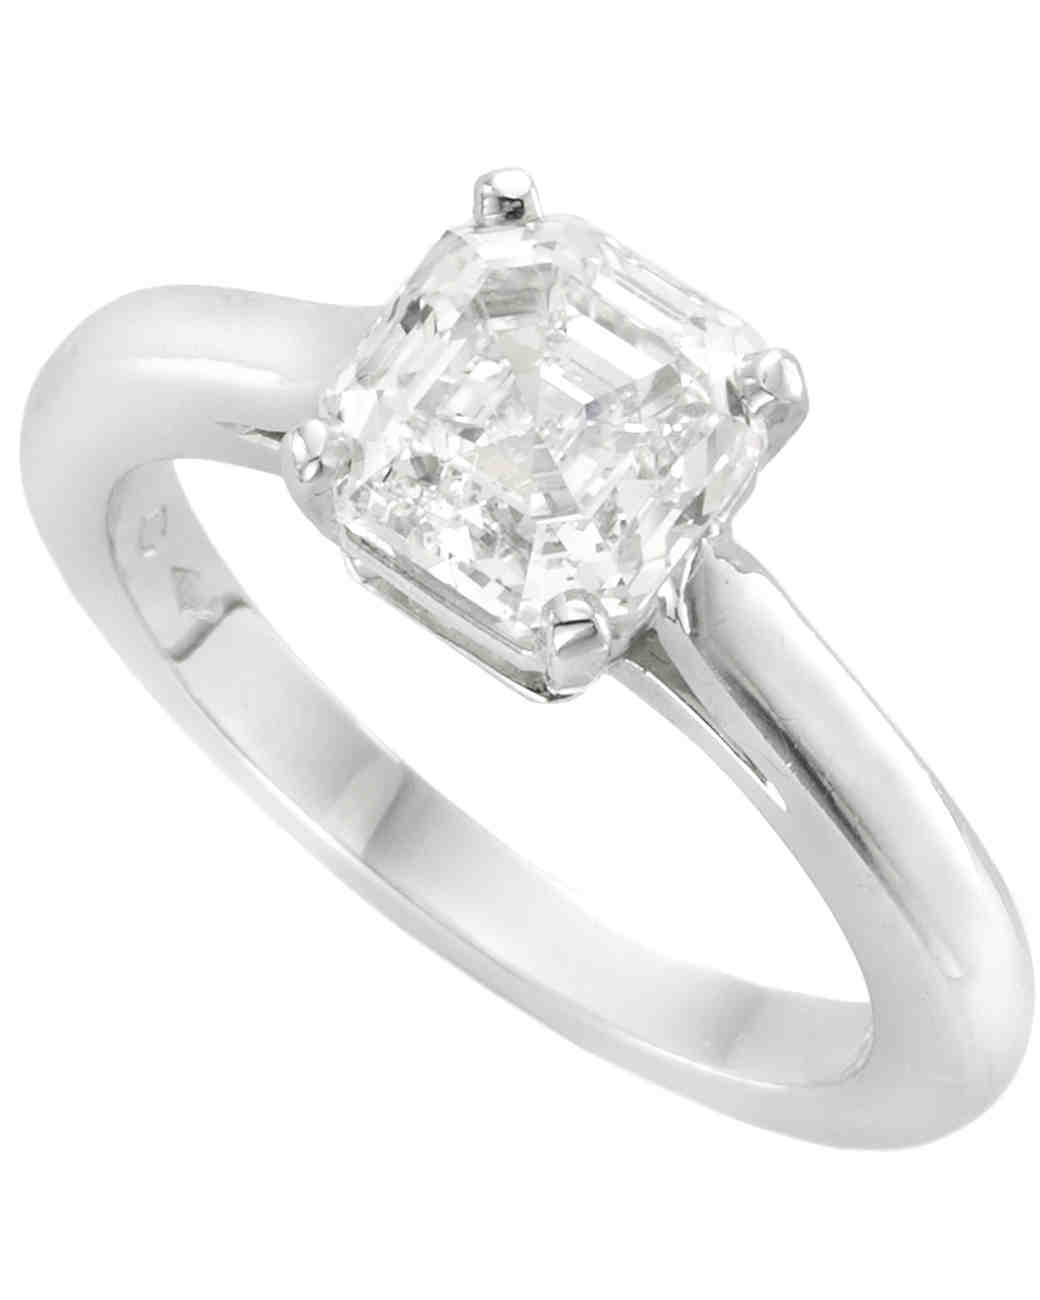 Van Cleef & Arpels Asscher-Cut Solitaire Engagement Ring on Plain Platinum Band